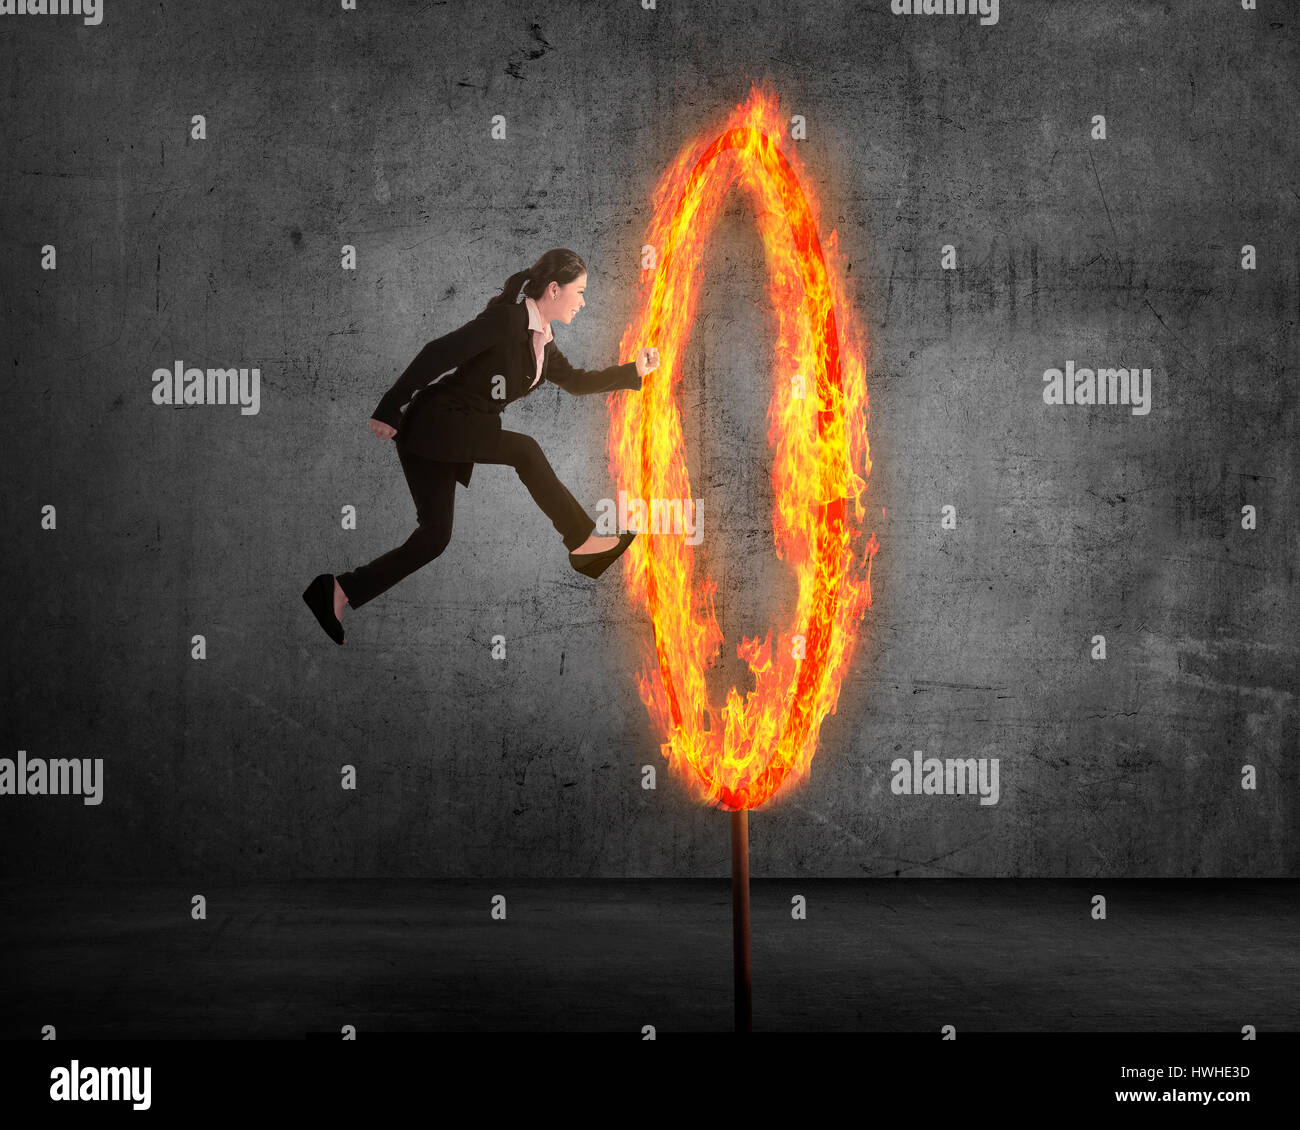 Asian business person jumping through ring of fire. Business risk conceptual - Stock Image